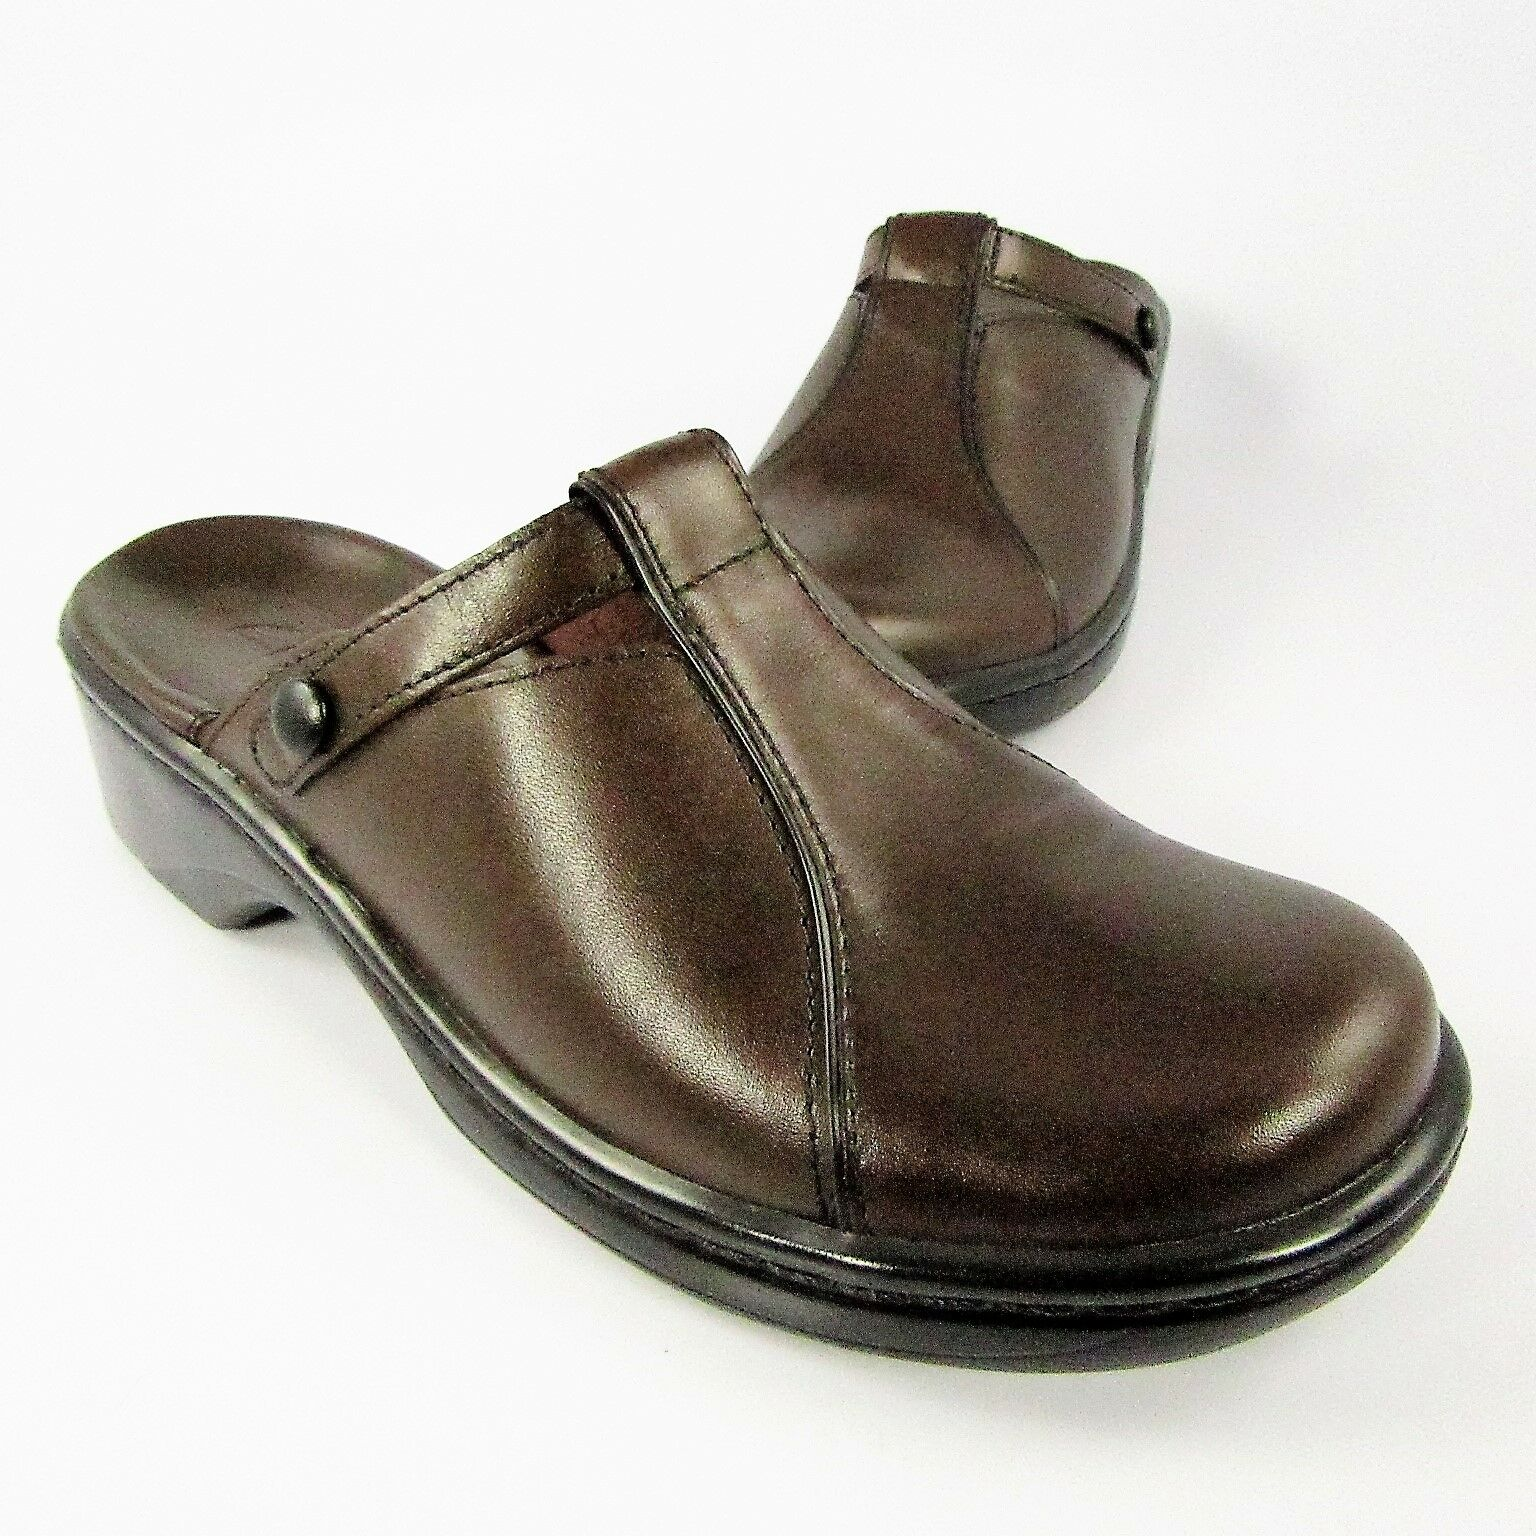 Clarks T-Strap Mules Womens Size 5M Brown Leather Slides Slip-Ons Clogs shoes